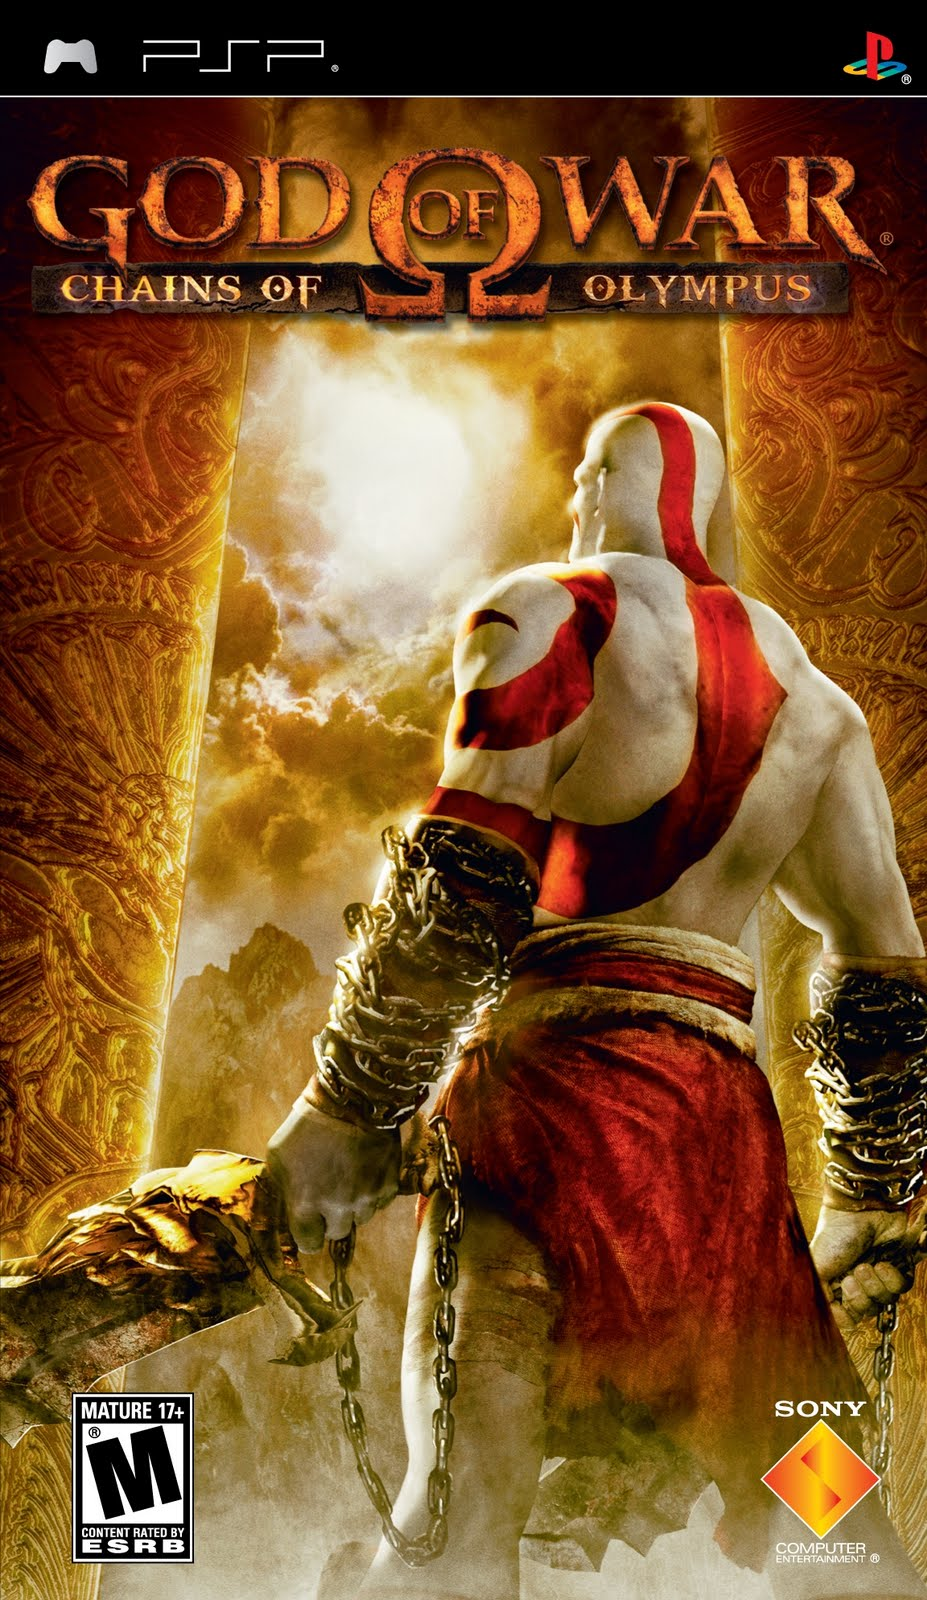 All The God Of War Games Ranked From Best To Worst